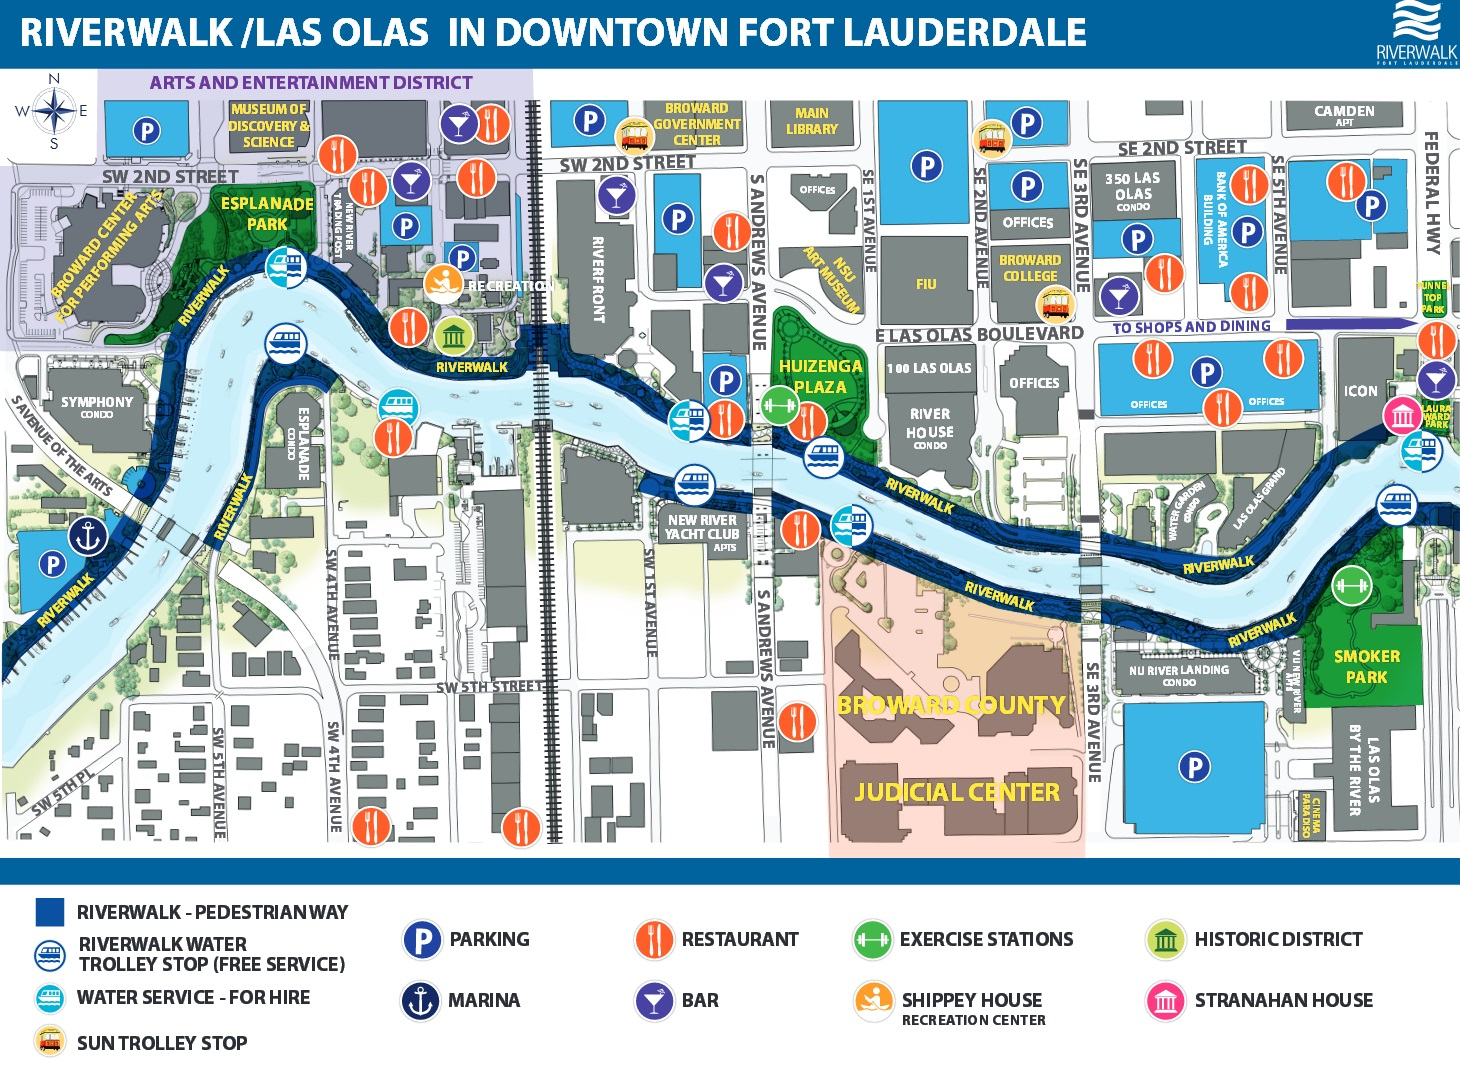 Riverwalk Fort Lauderdale – Information ◇ Events ◇ Advocacy - Map Of Hotels In Fort Lauderdale Florida